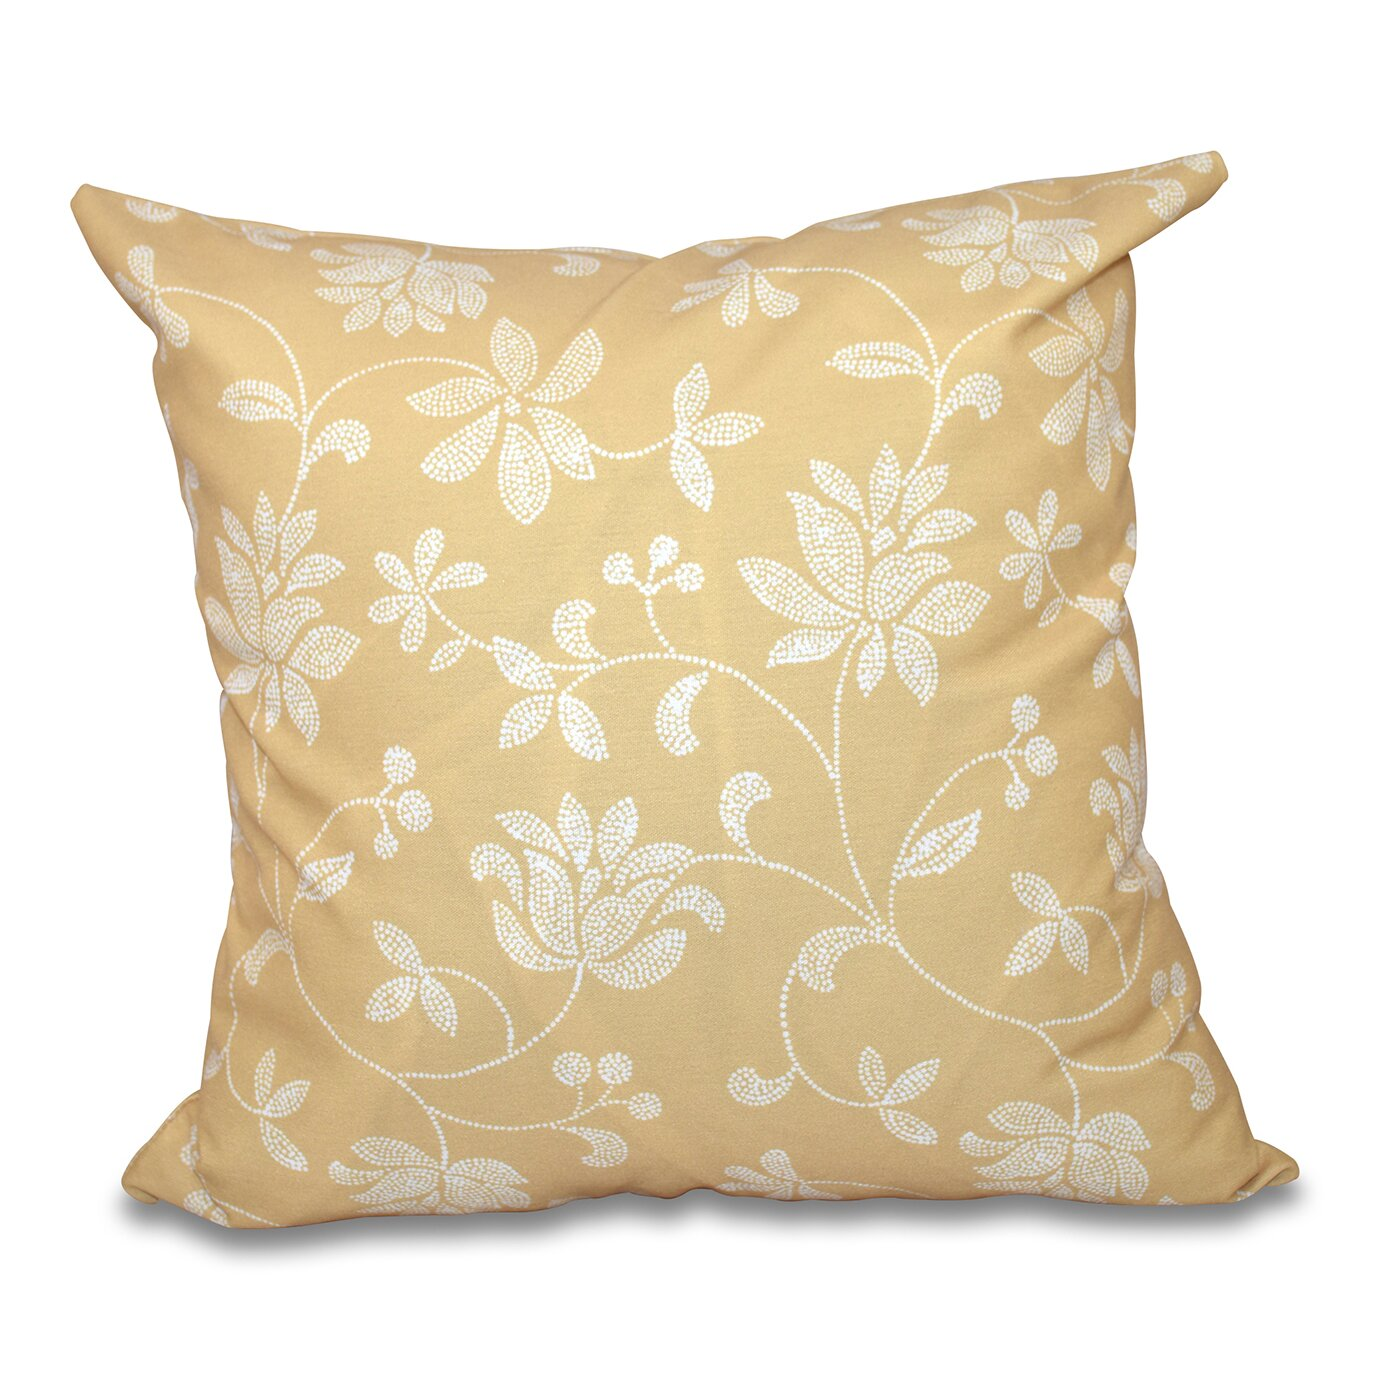 Traditional Throw Pillows : One Allium Way Grovetown Traditional Floral Print Throw Pillow & Reviews Wayfair